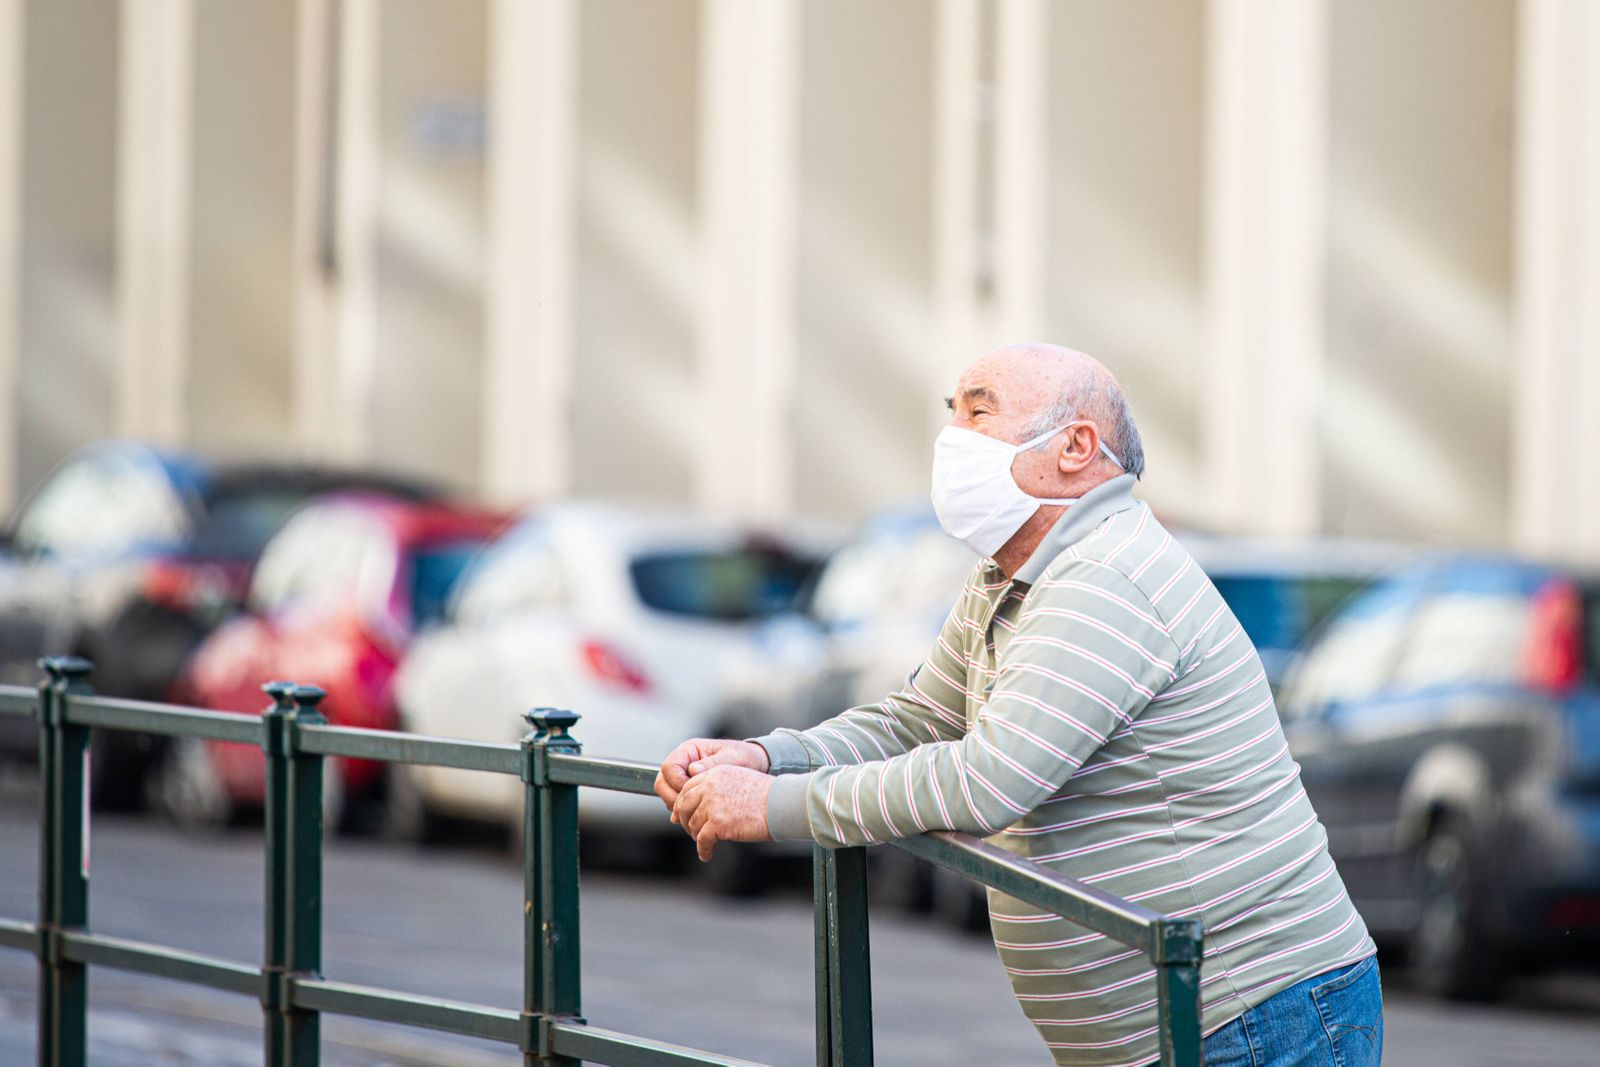 Italy: Turin lockdown 14th April 2020 People wear a safety mask in Piazza Castello in a deserted Turin on April 14, 2020